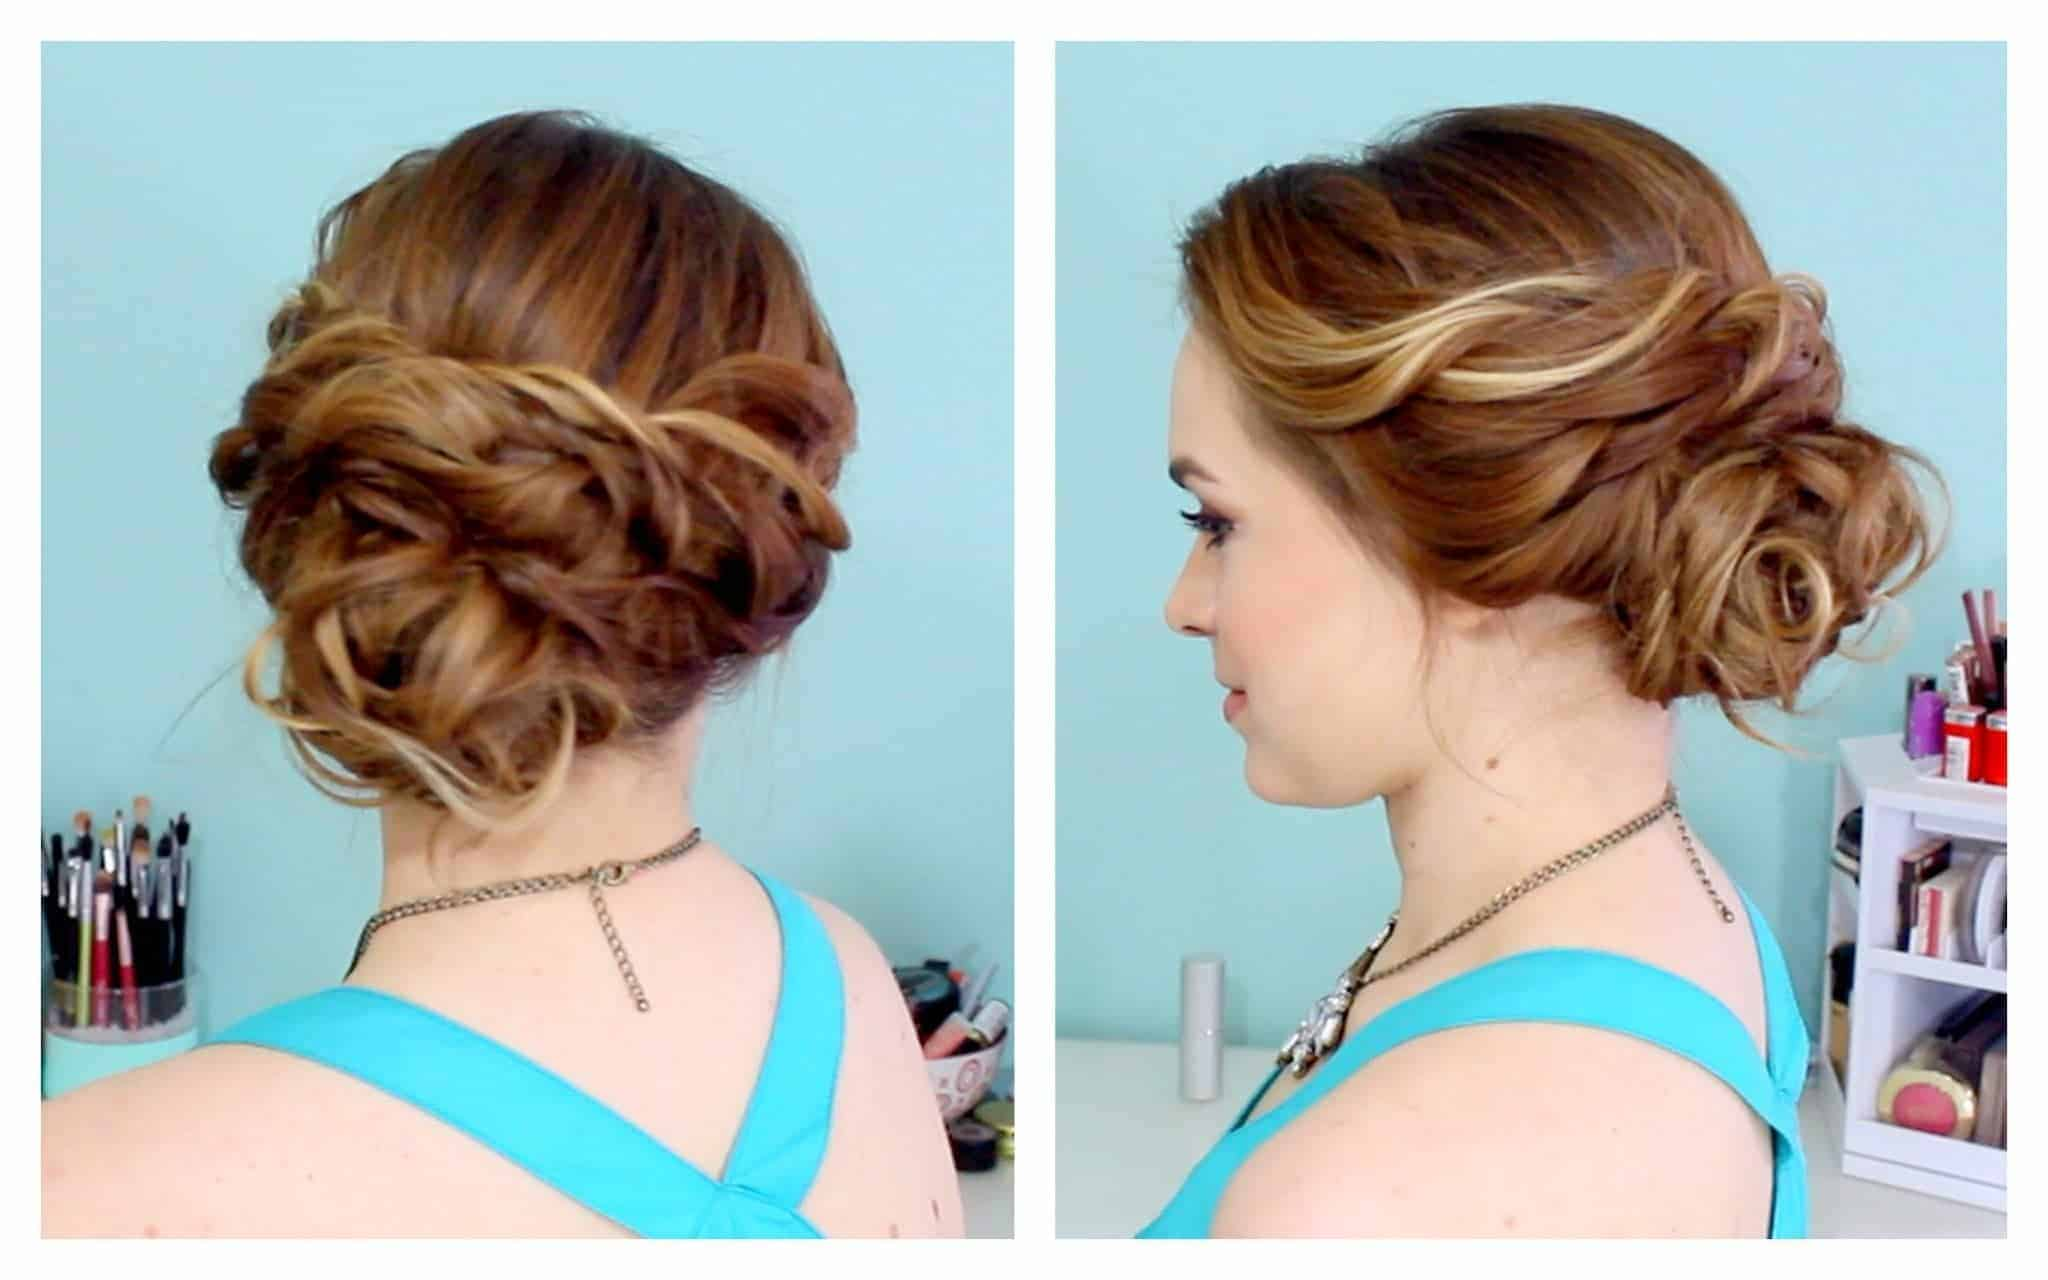 Updo Hairstyles for stylish women